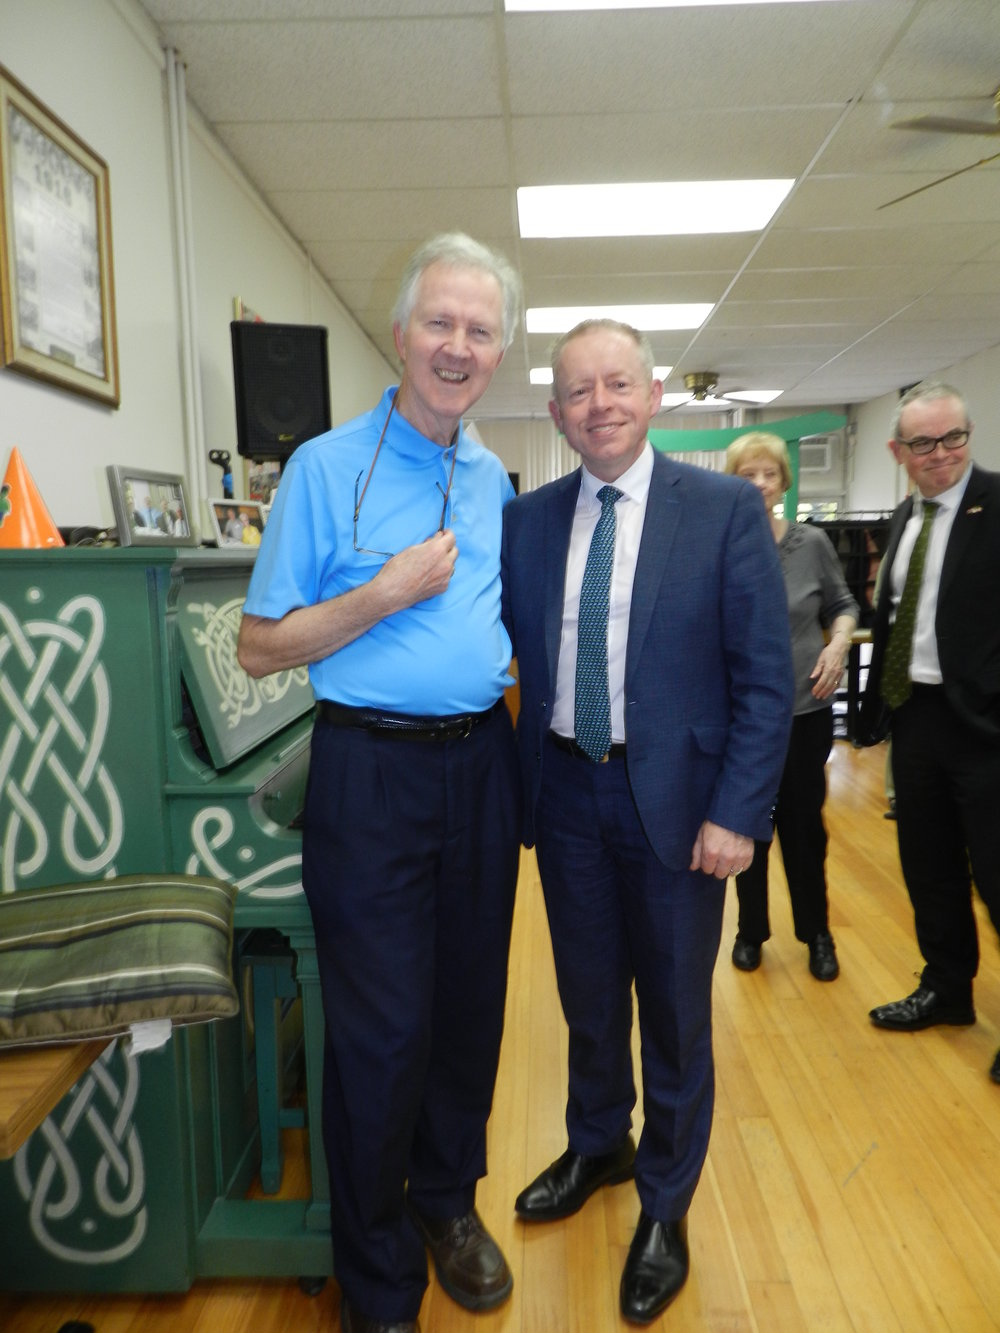 Pictured above is Minister Ciaran Cannon, T.D. (right) along with Aiden Scannel, vice-president of the Emerald Isle Seniors Society